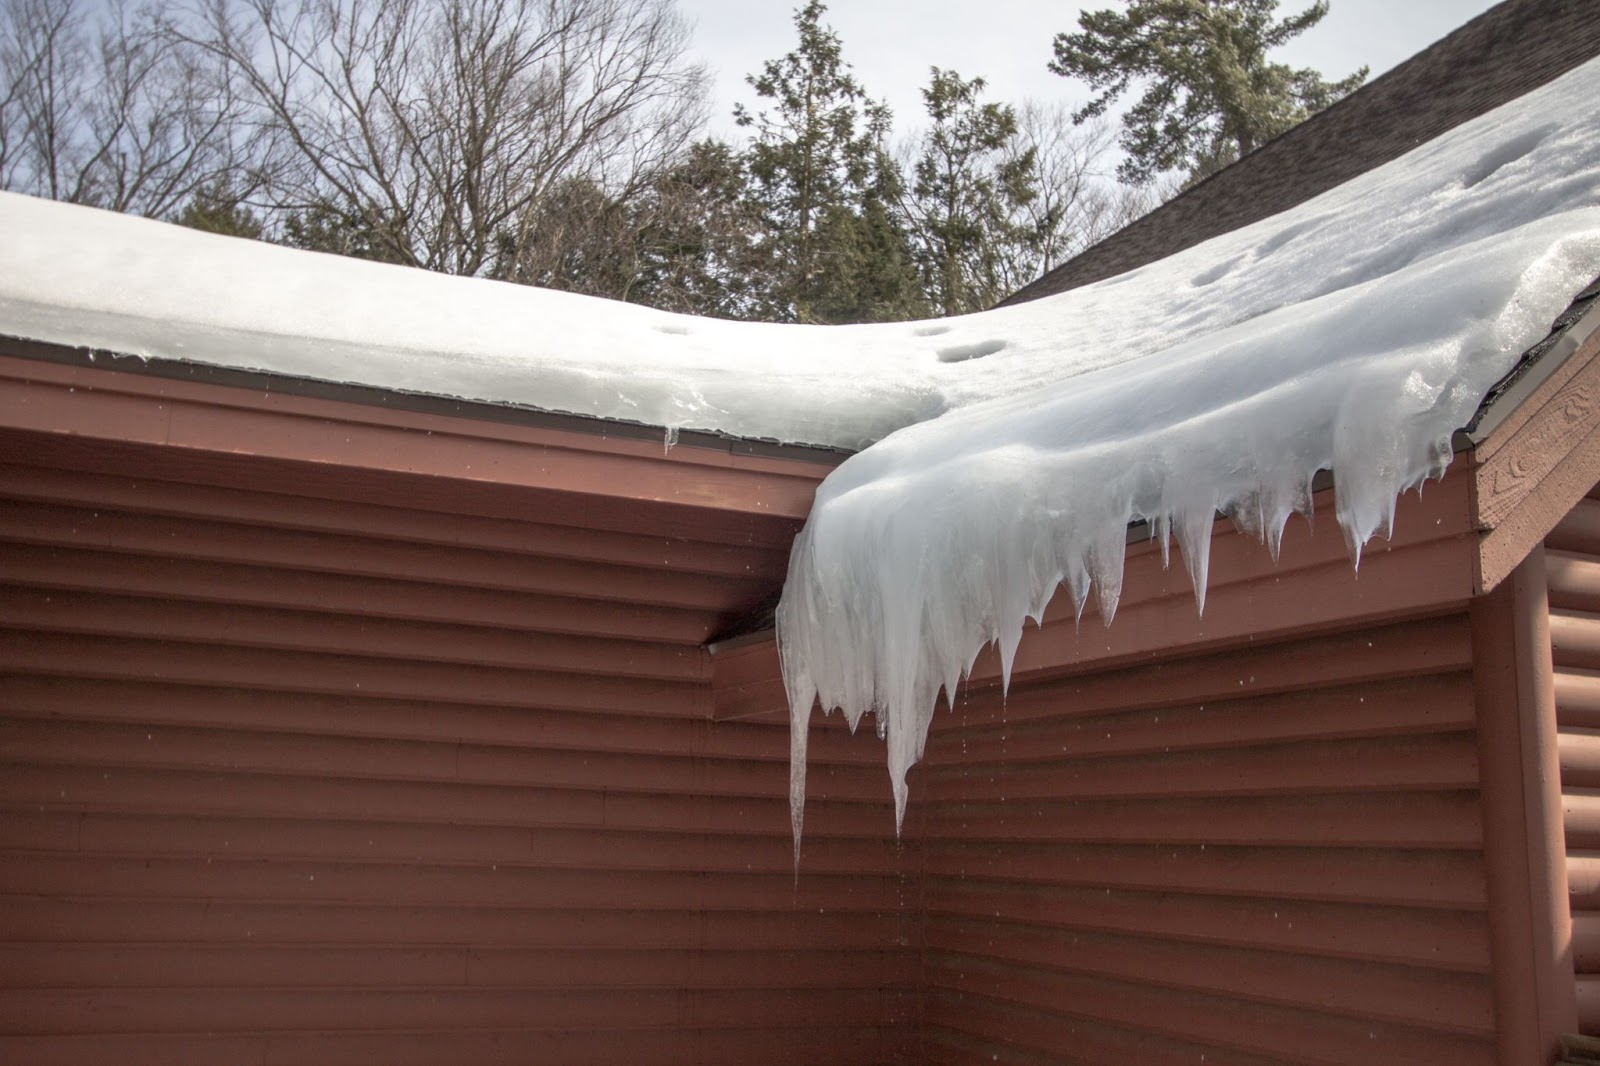 Water damage from snow